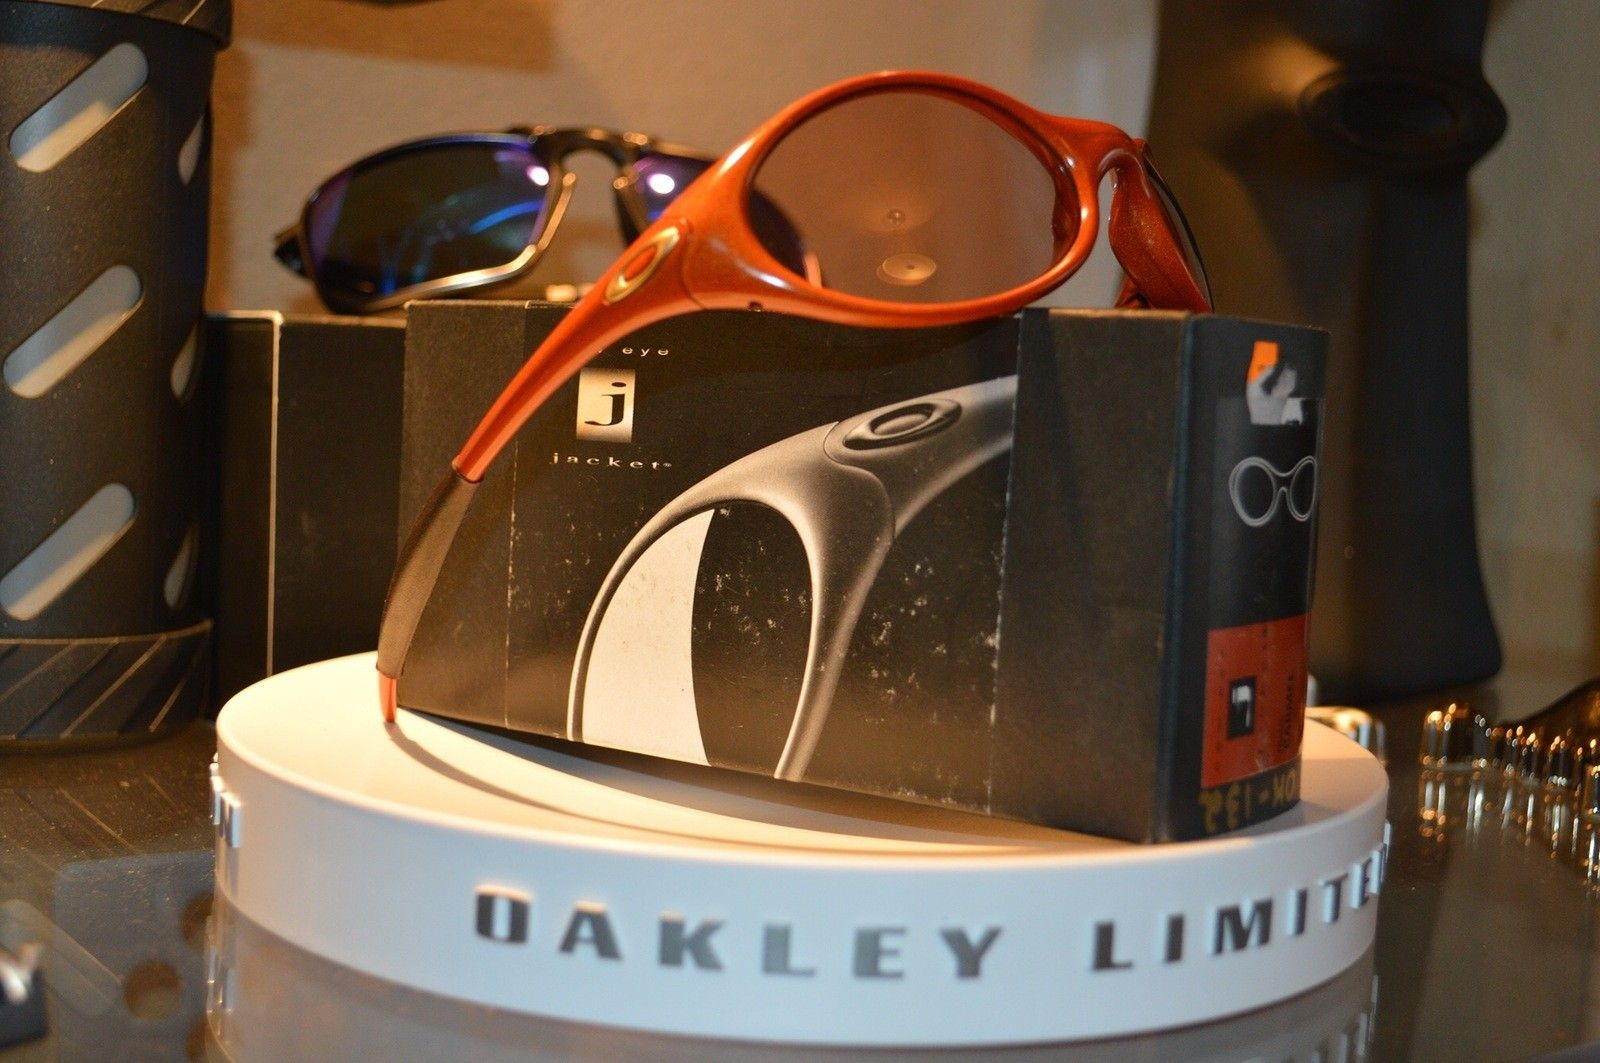 BNIB New Eye Jacket Carmel w/ vr50 & Joker w/ Gold Iridium & Red line w/ Gold Iridium #SOLD - image.jpeg